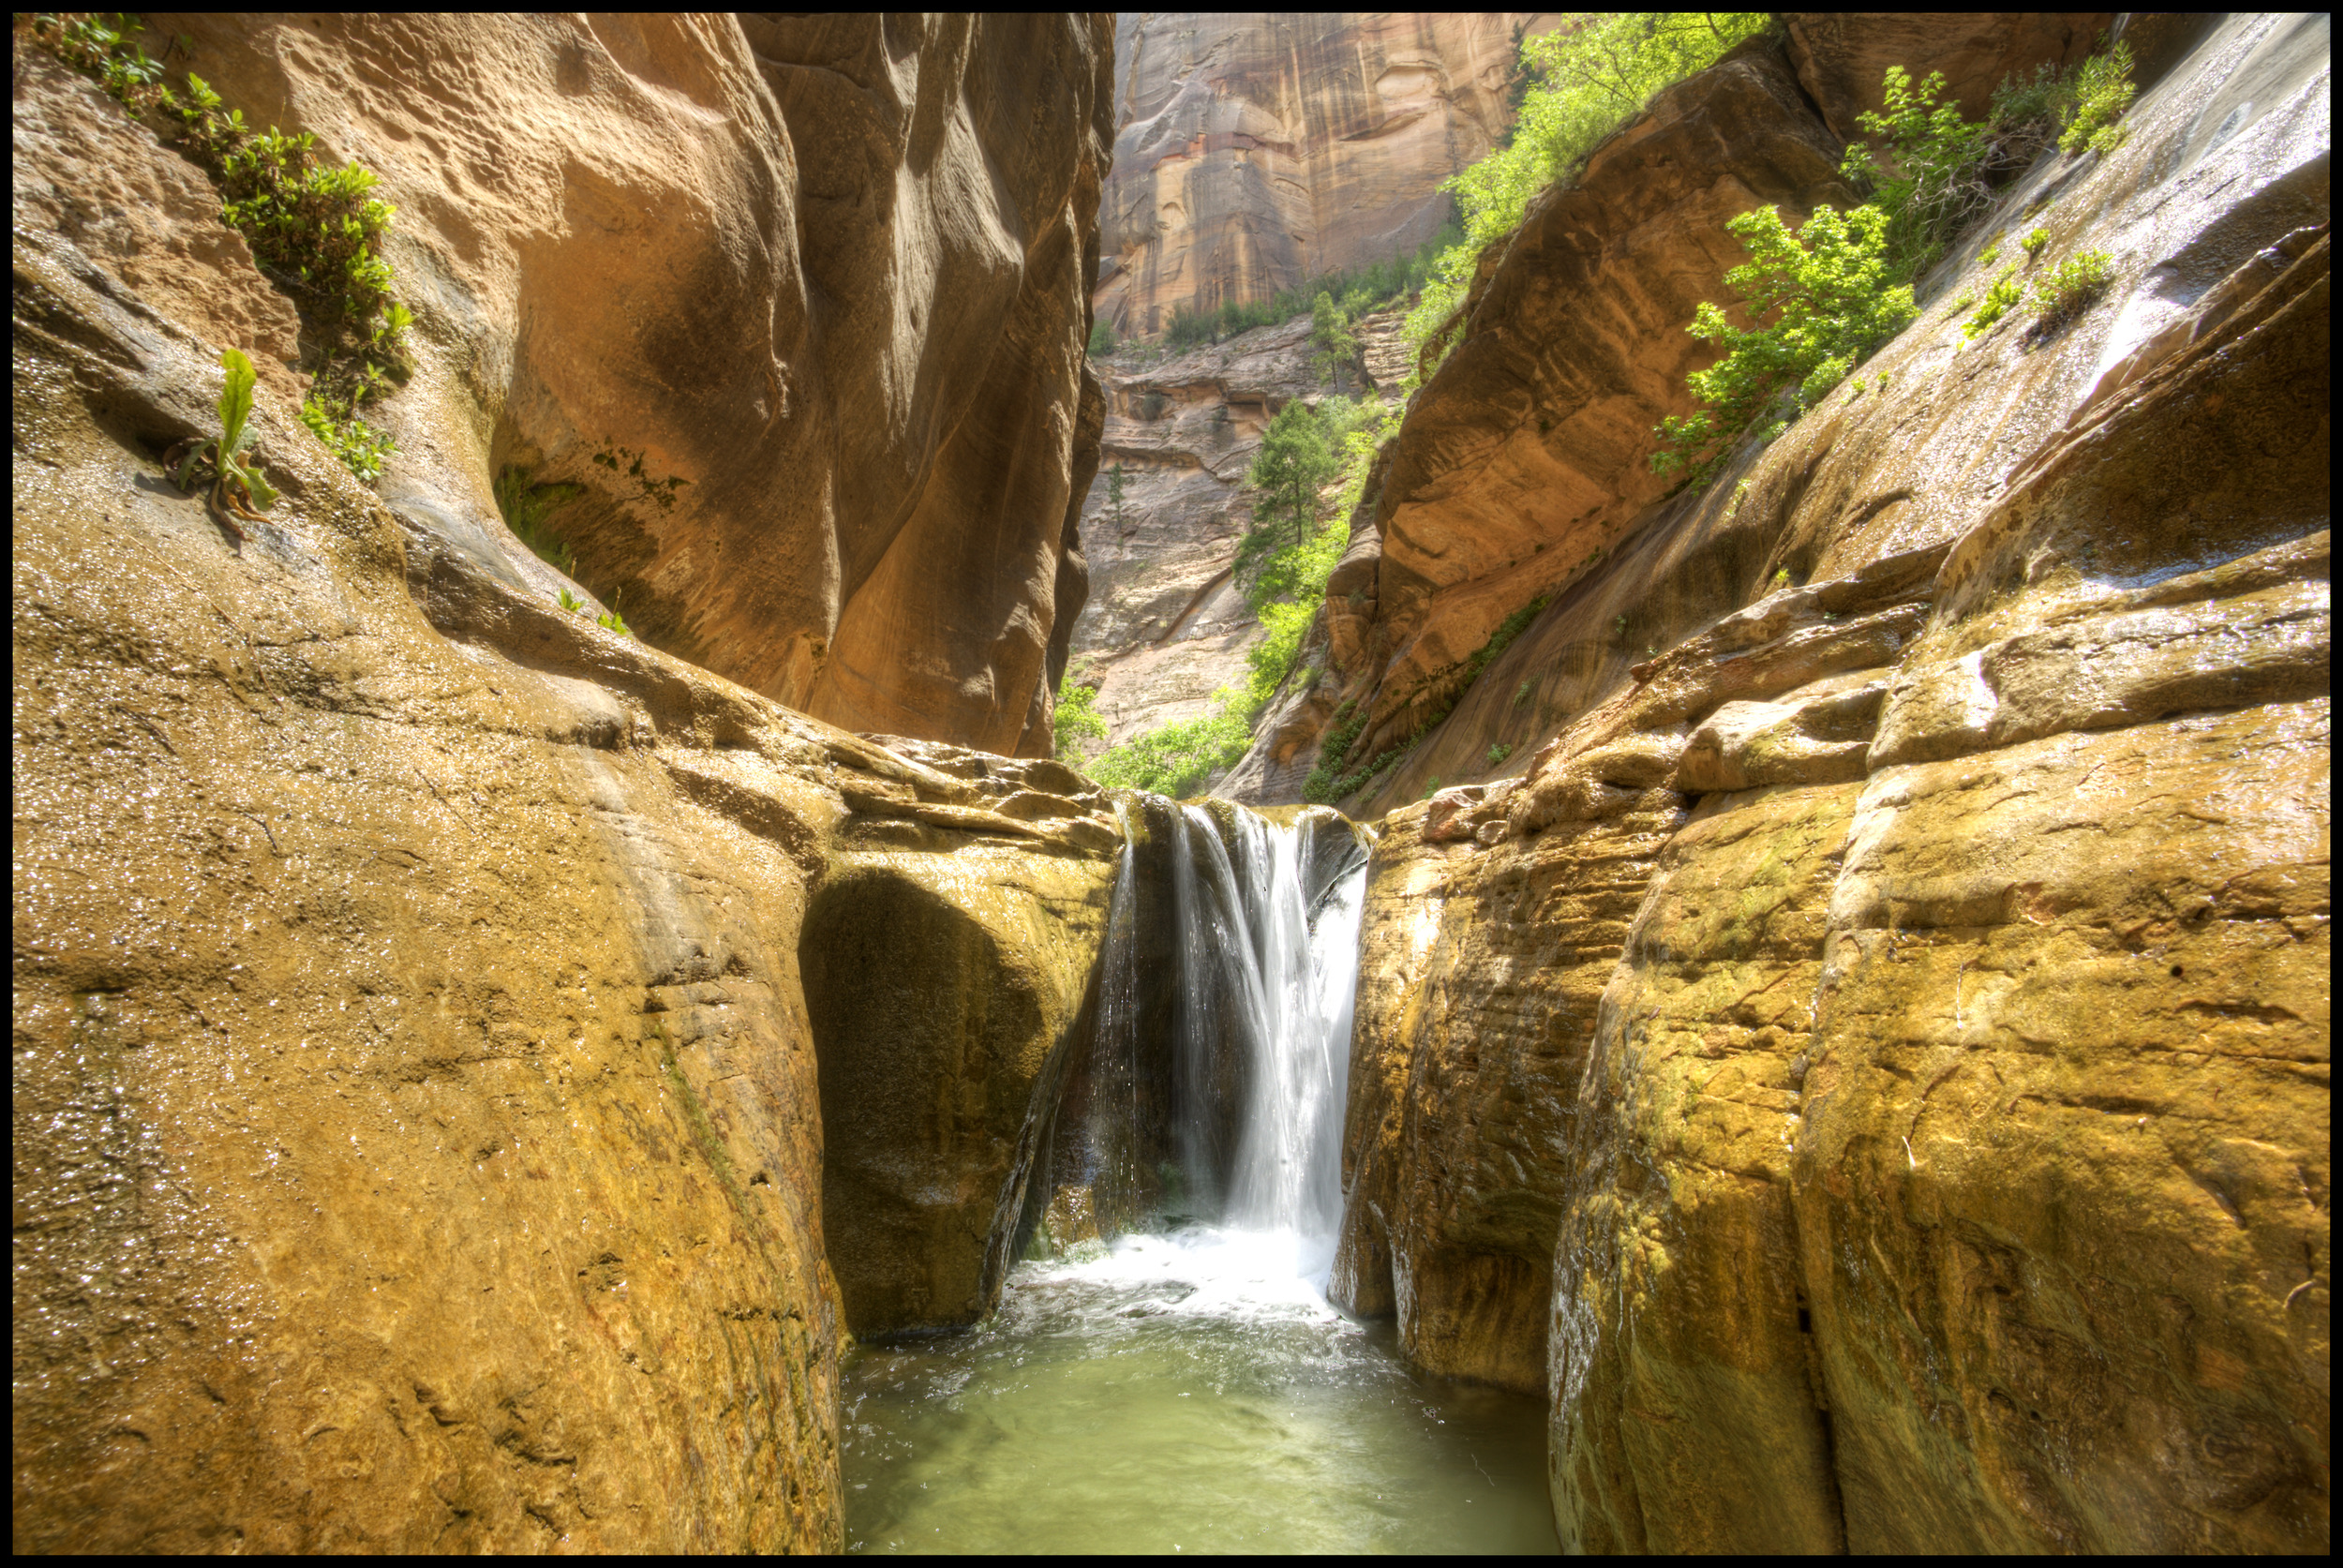 The Narrows, Zion National Park, UT